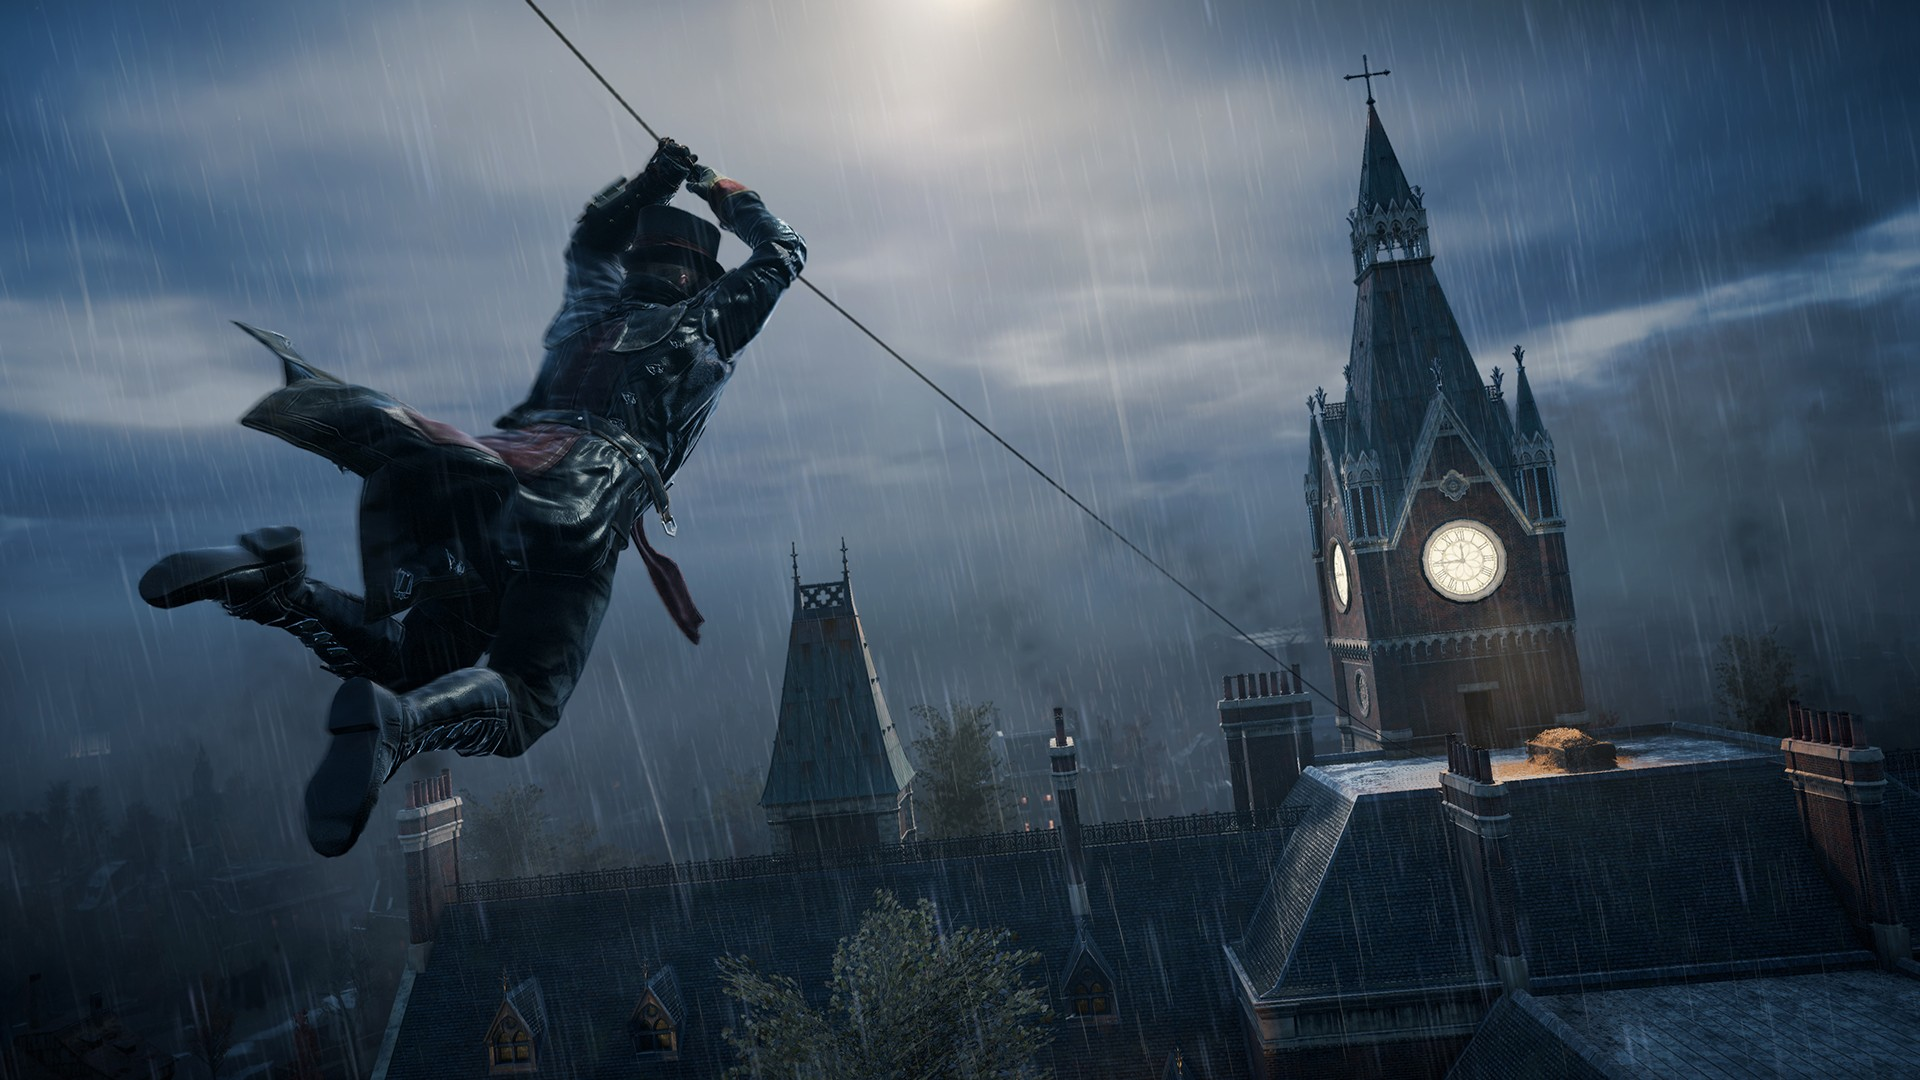 Assassins creed syndicate patch 1. 51 fixes pro support | neogaf.